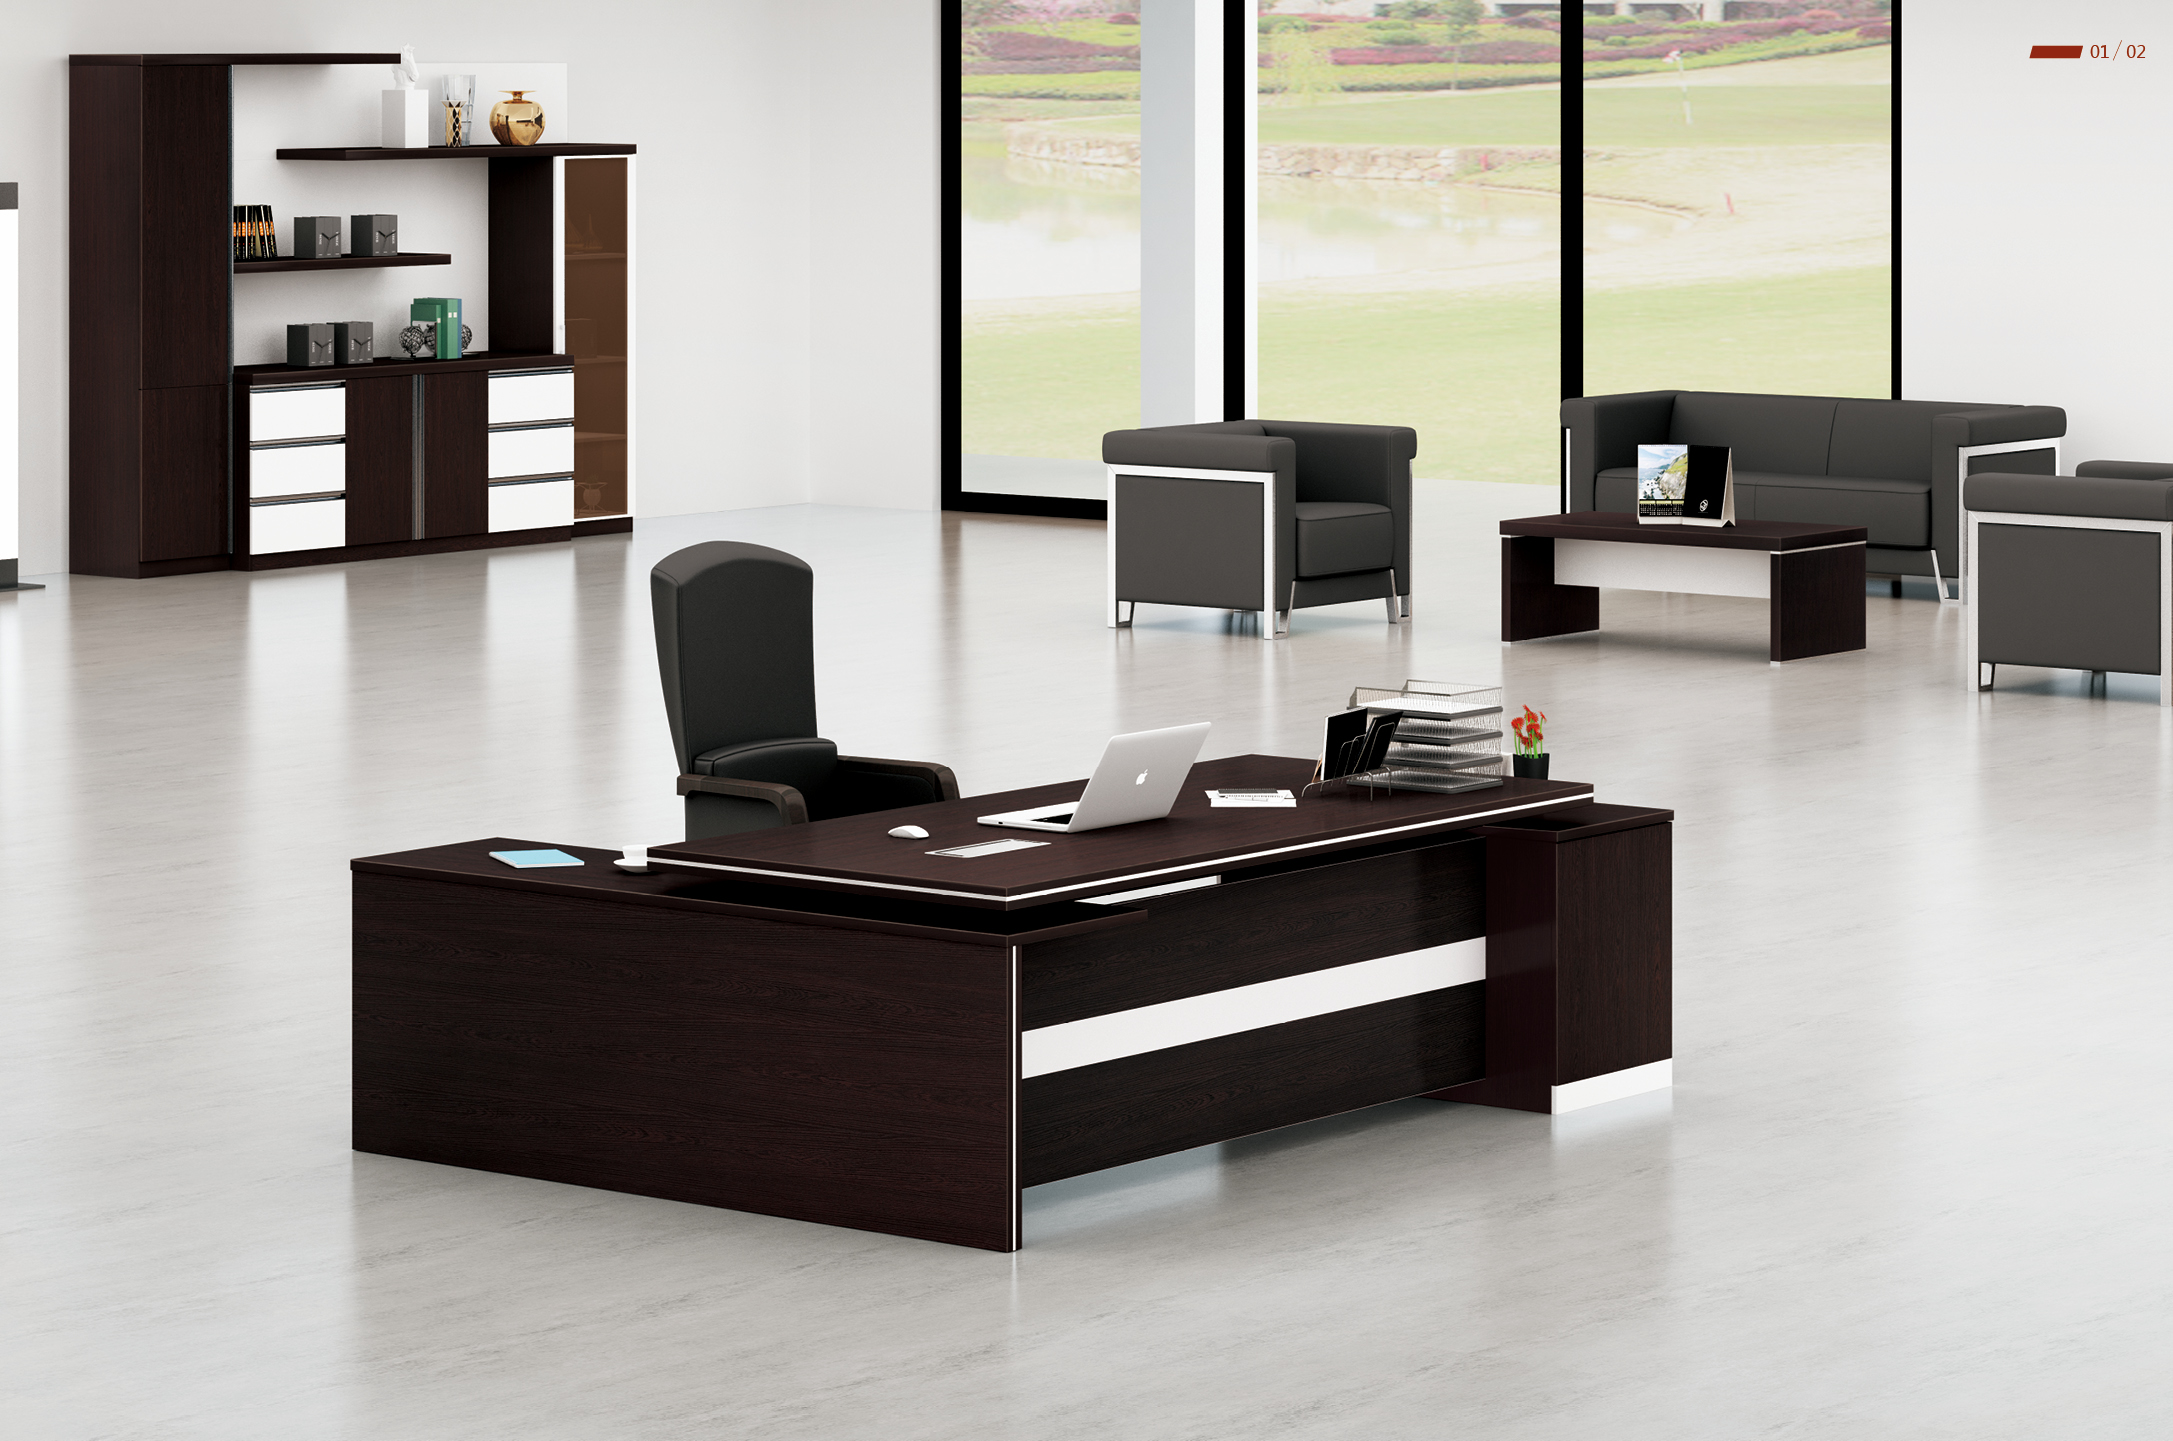 Fsc forest certified approved by sgs 2016 new fashion for Office furniture designs photos